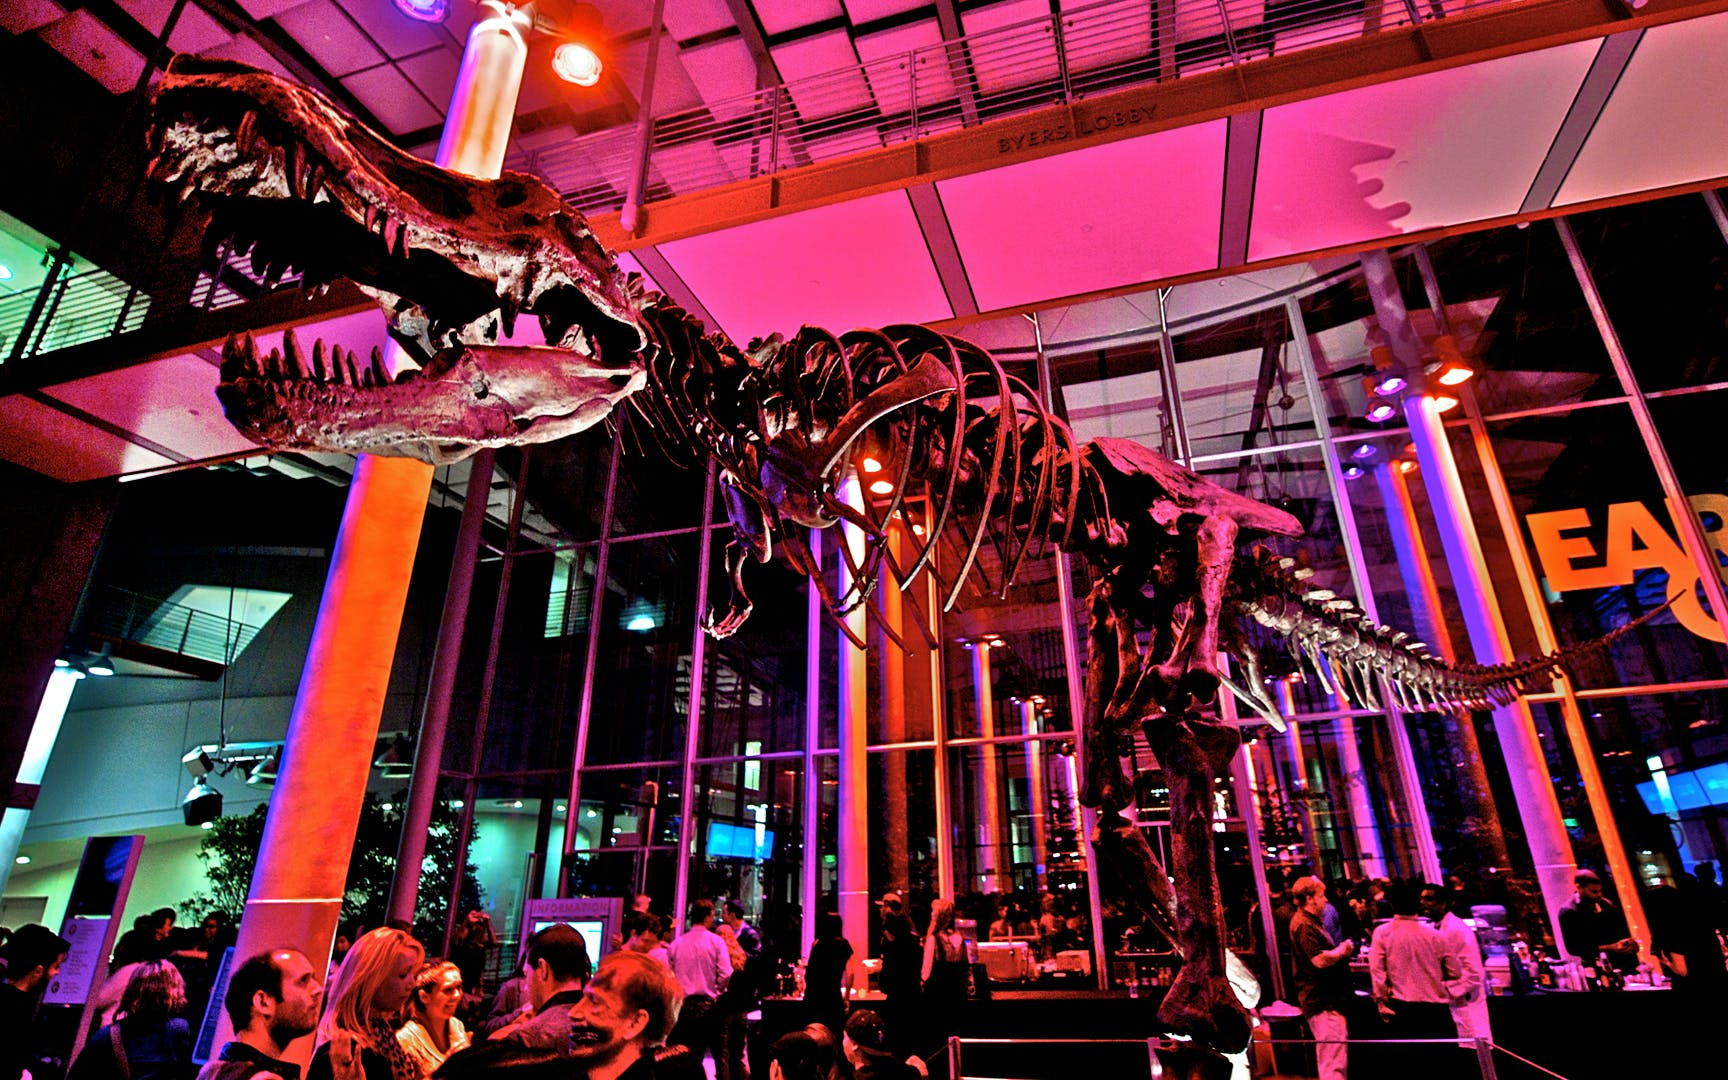 nightlife at california academy of sciences-1